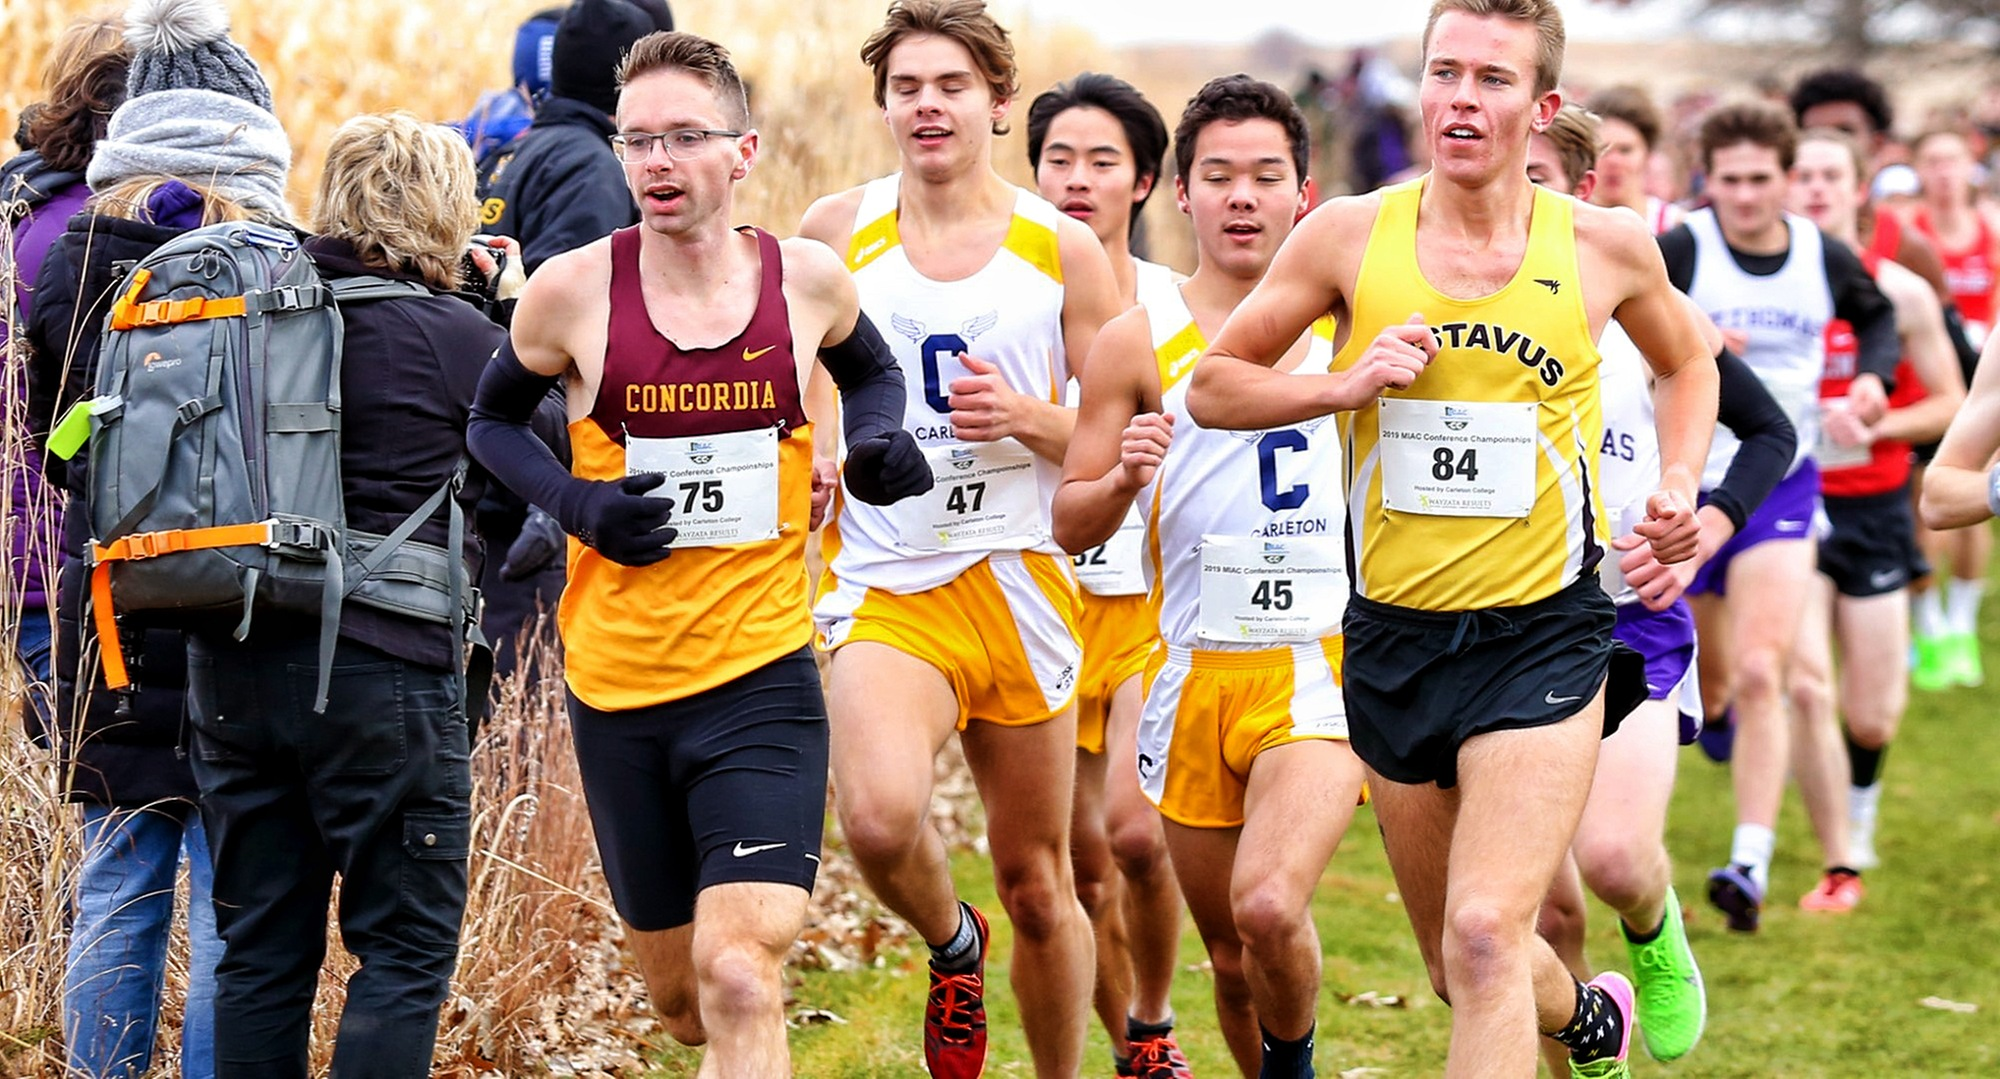 Senior Eric Wicklund led the Cobbers in the NCAA Regional Meet at Wartburg College as CC posted its first Top 15 finish since 2003. (Photo courtesy Nathan Lodermeier)